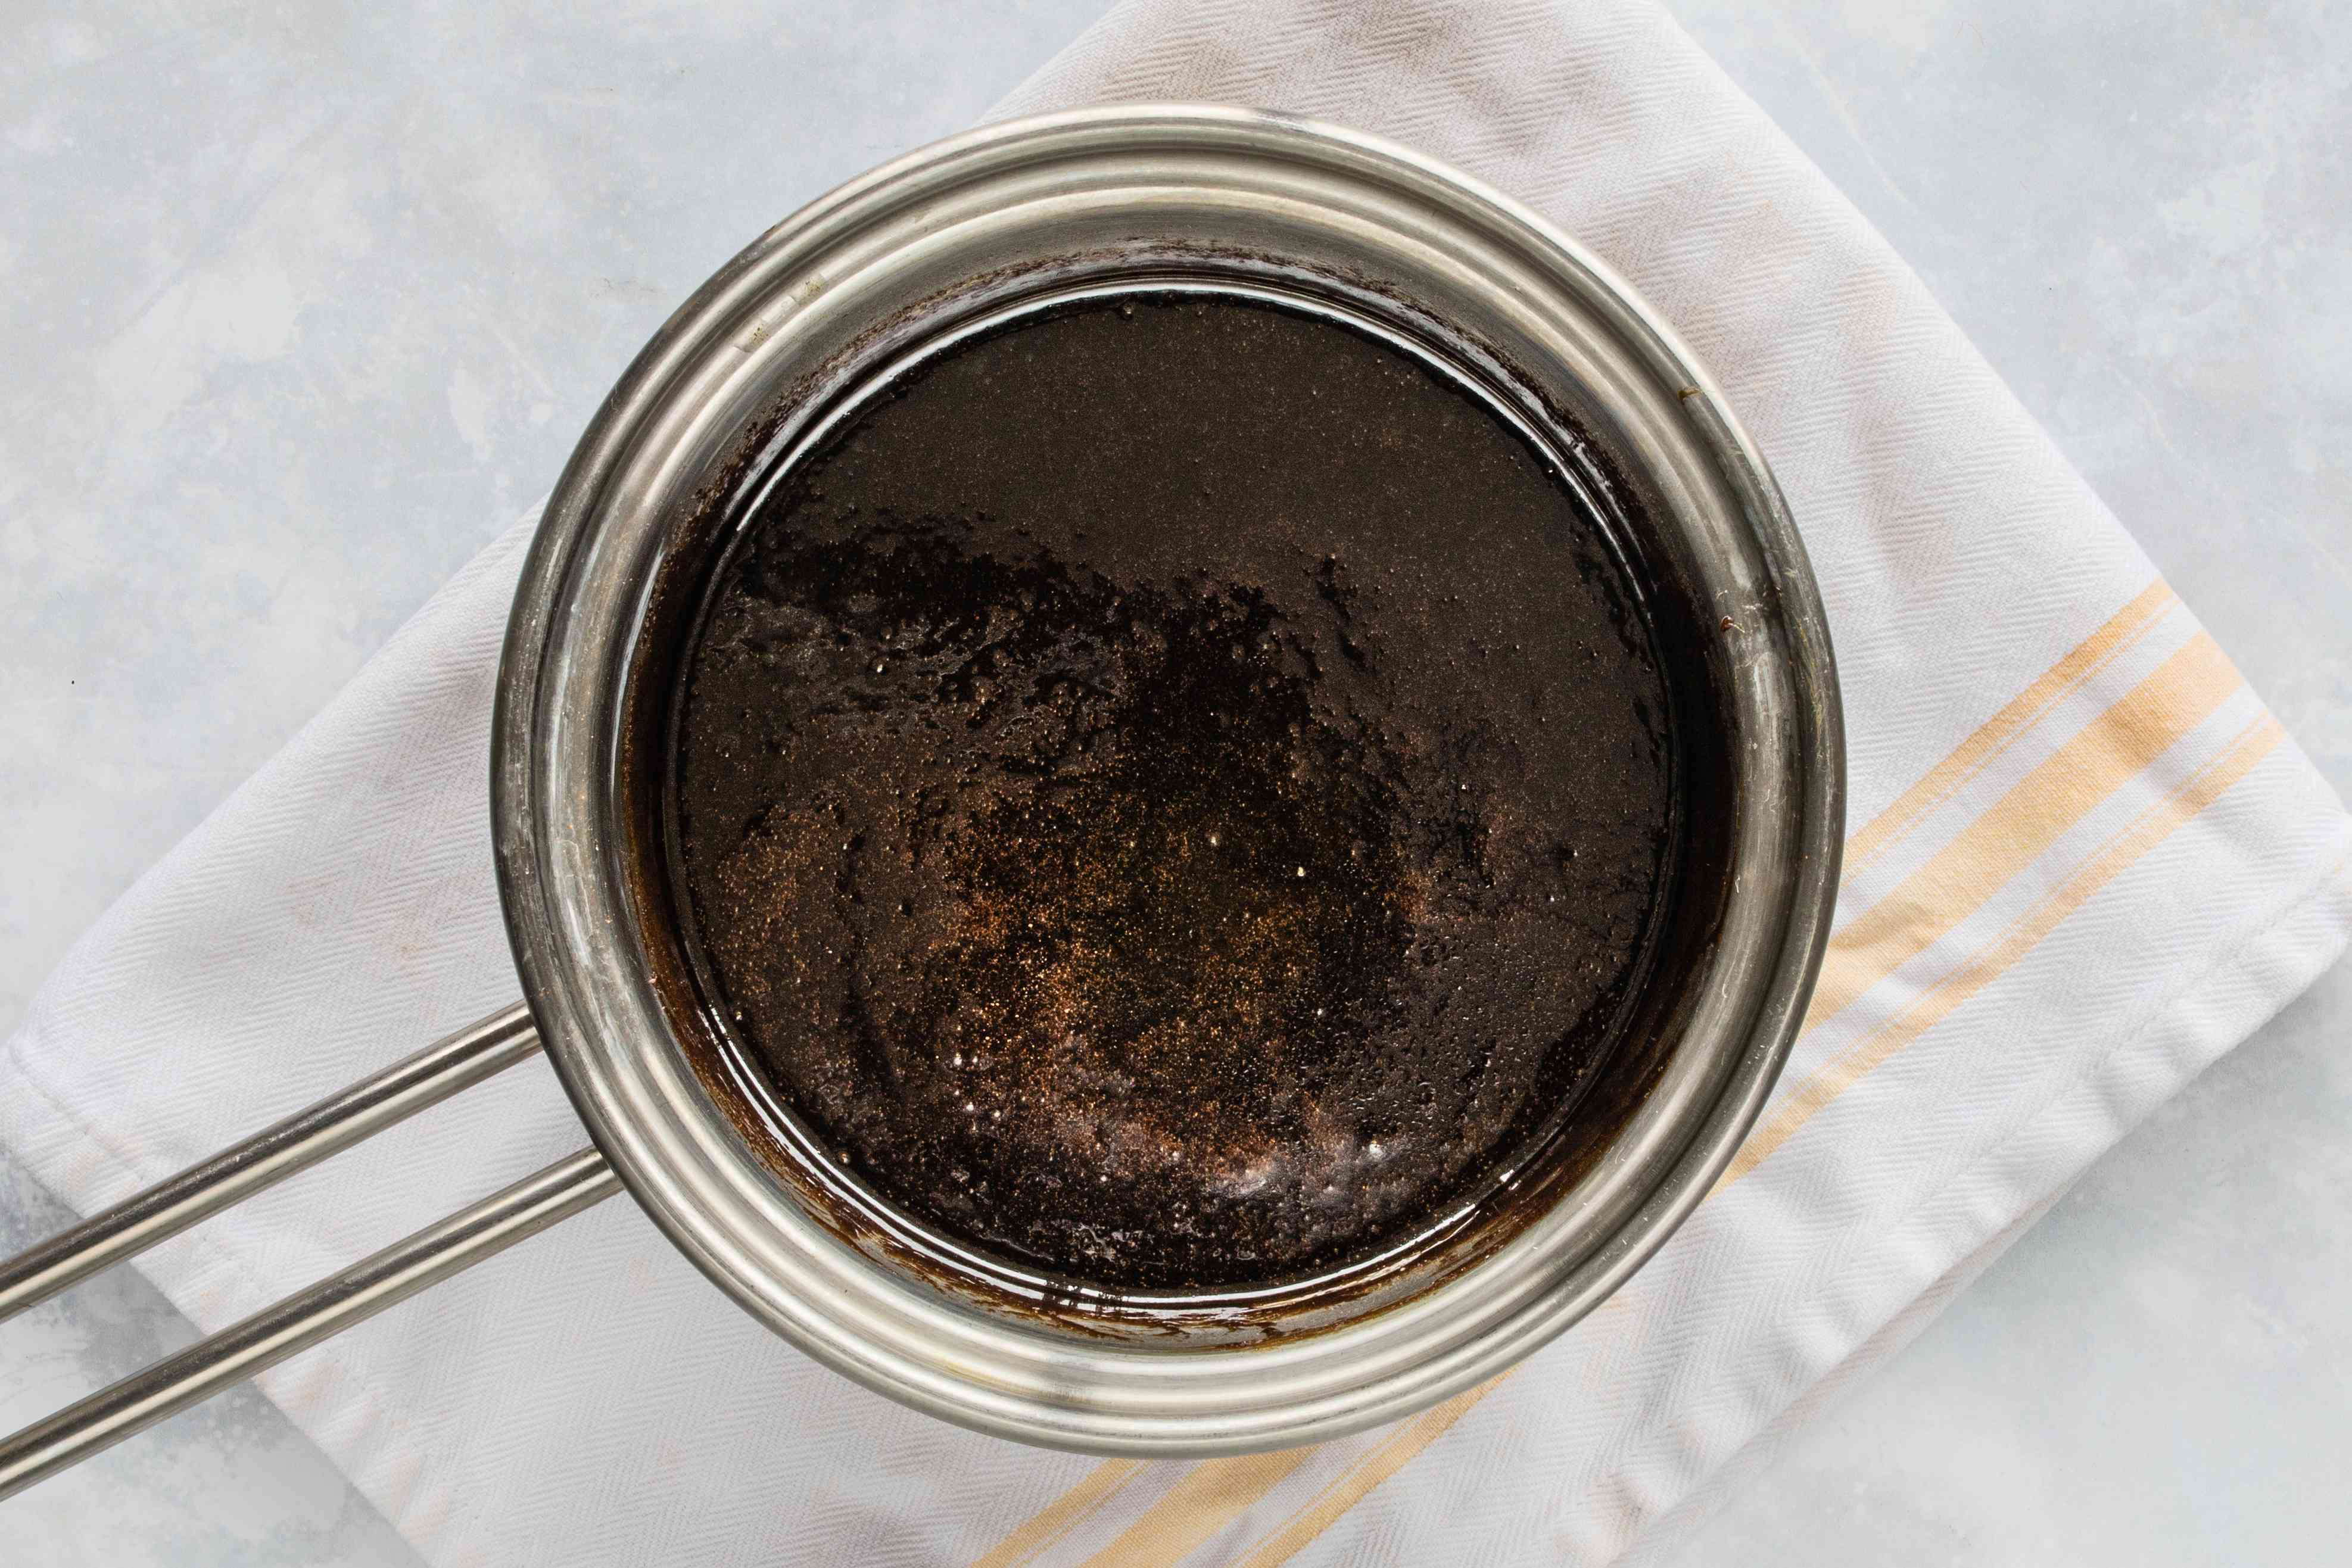 Set aside molasses mixture to cool